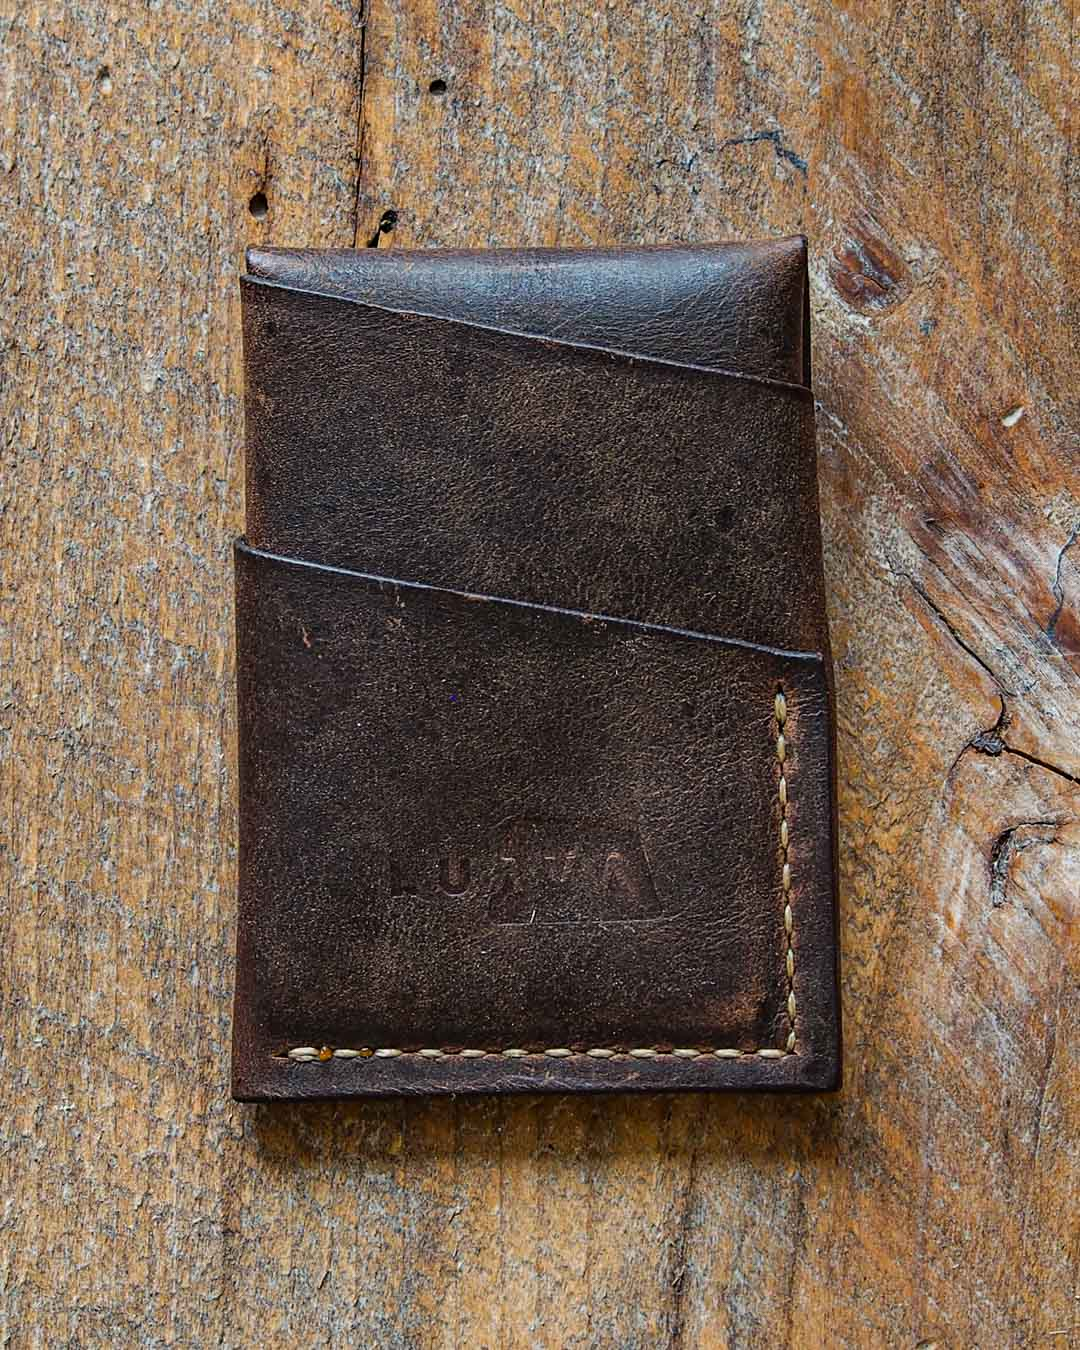 Luava handcrafted leather overfold wallet rustic cardholder card holder handmade in finland back empty